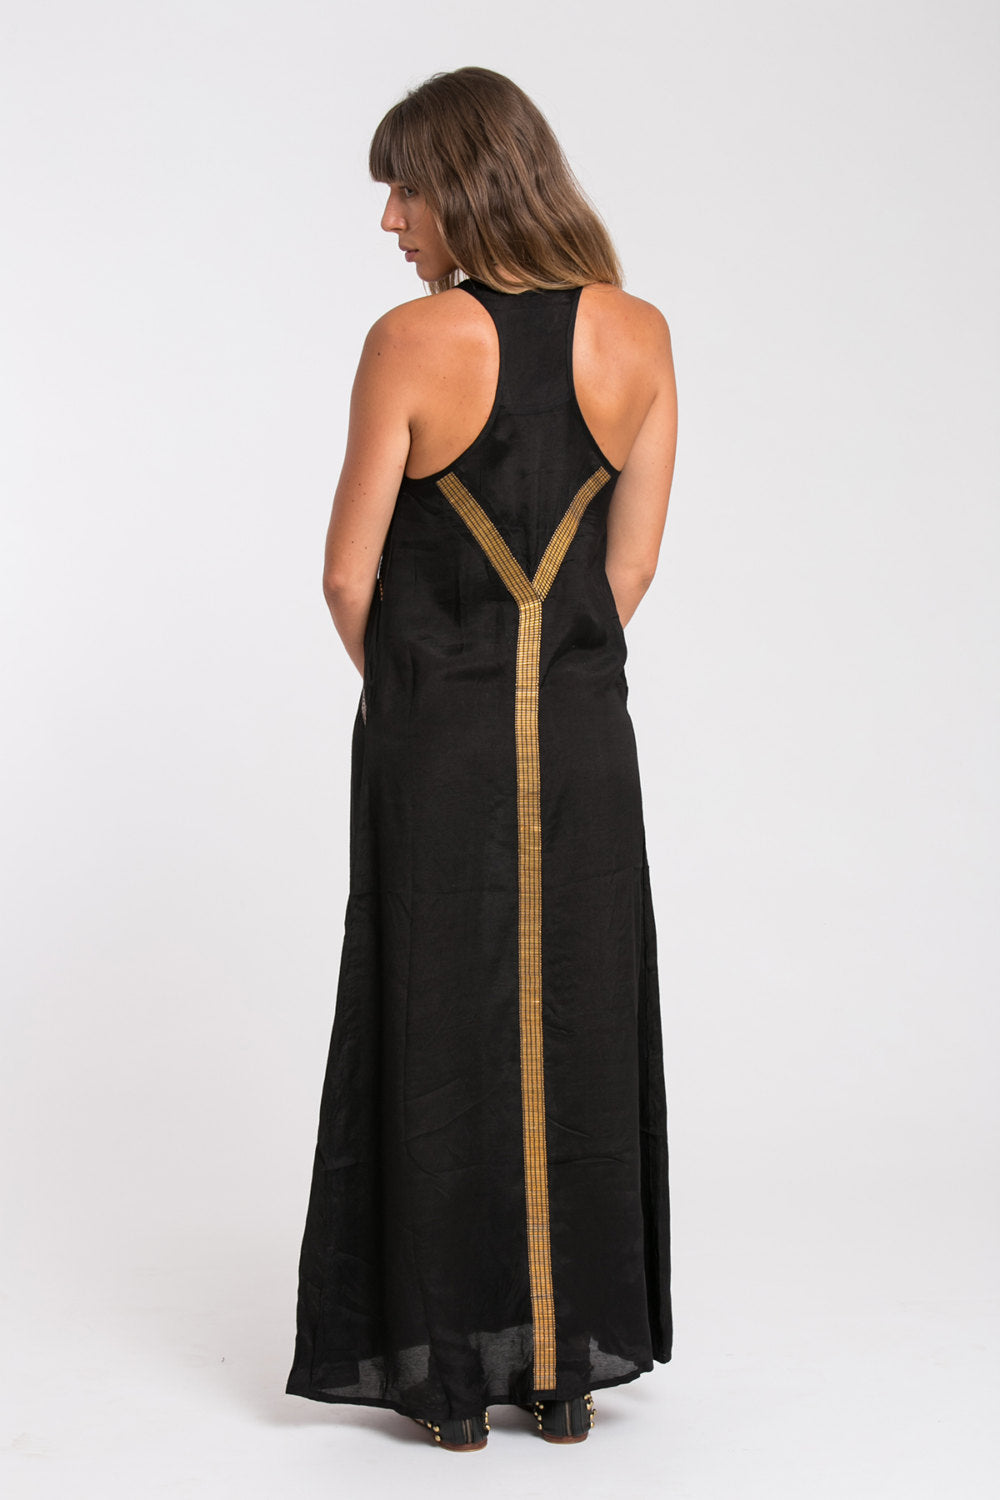 EGYPTIAN MAXI DRESS BLACK